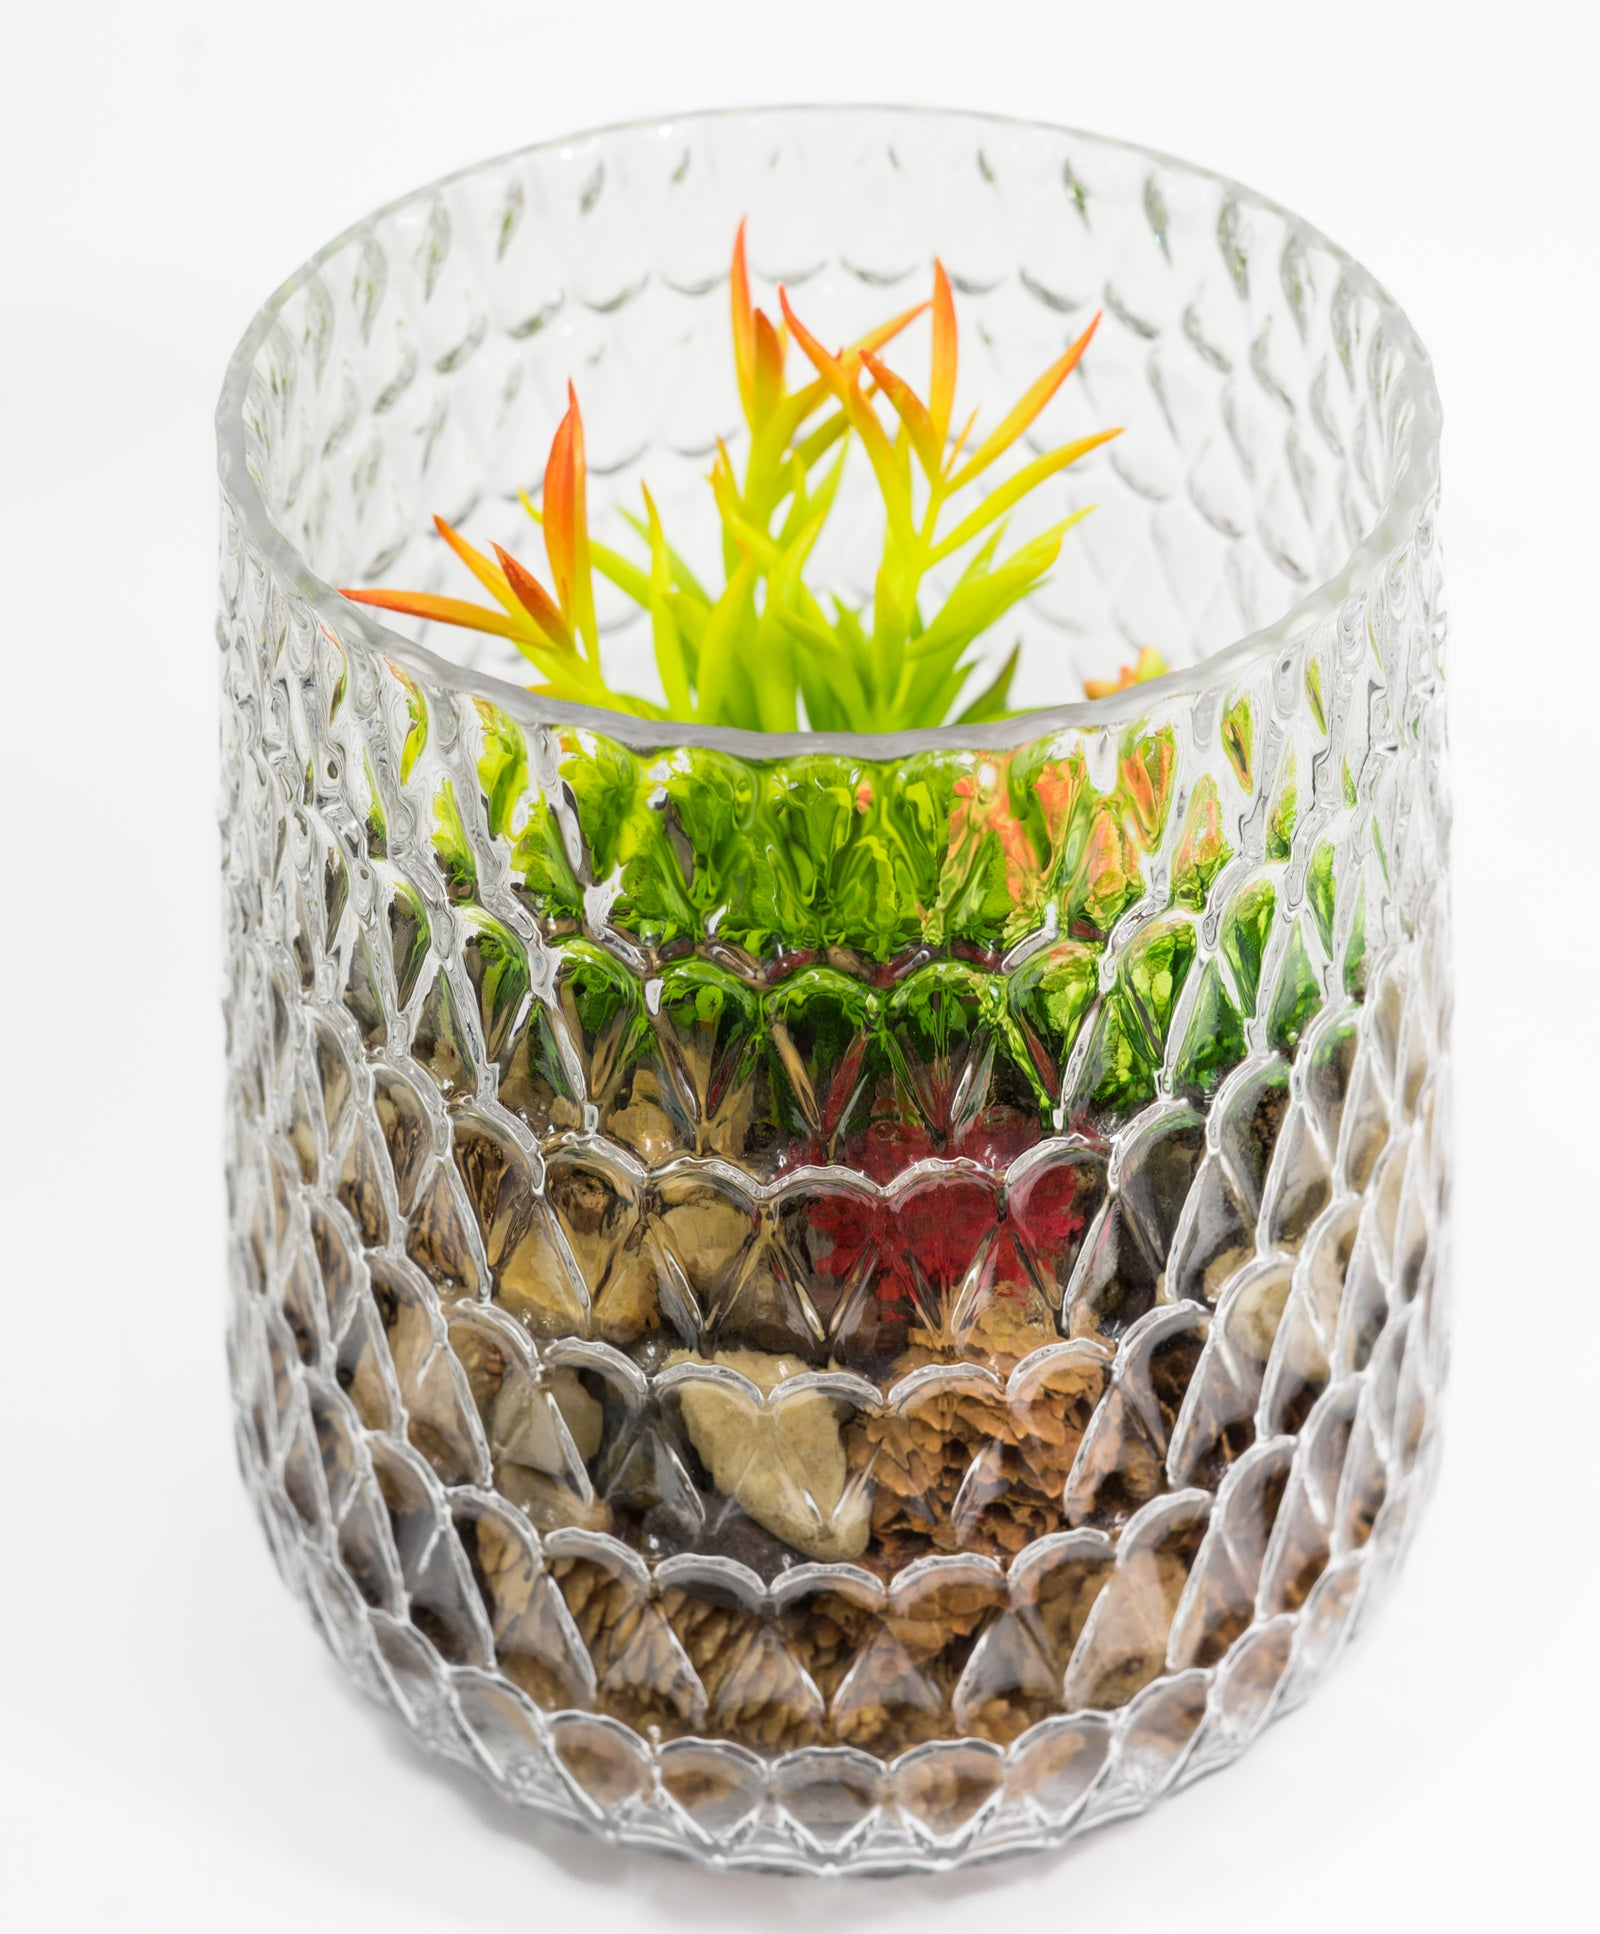 dazzling Crystal Glass Vase with multiple uses such as terrarium